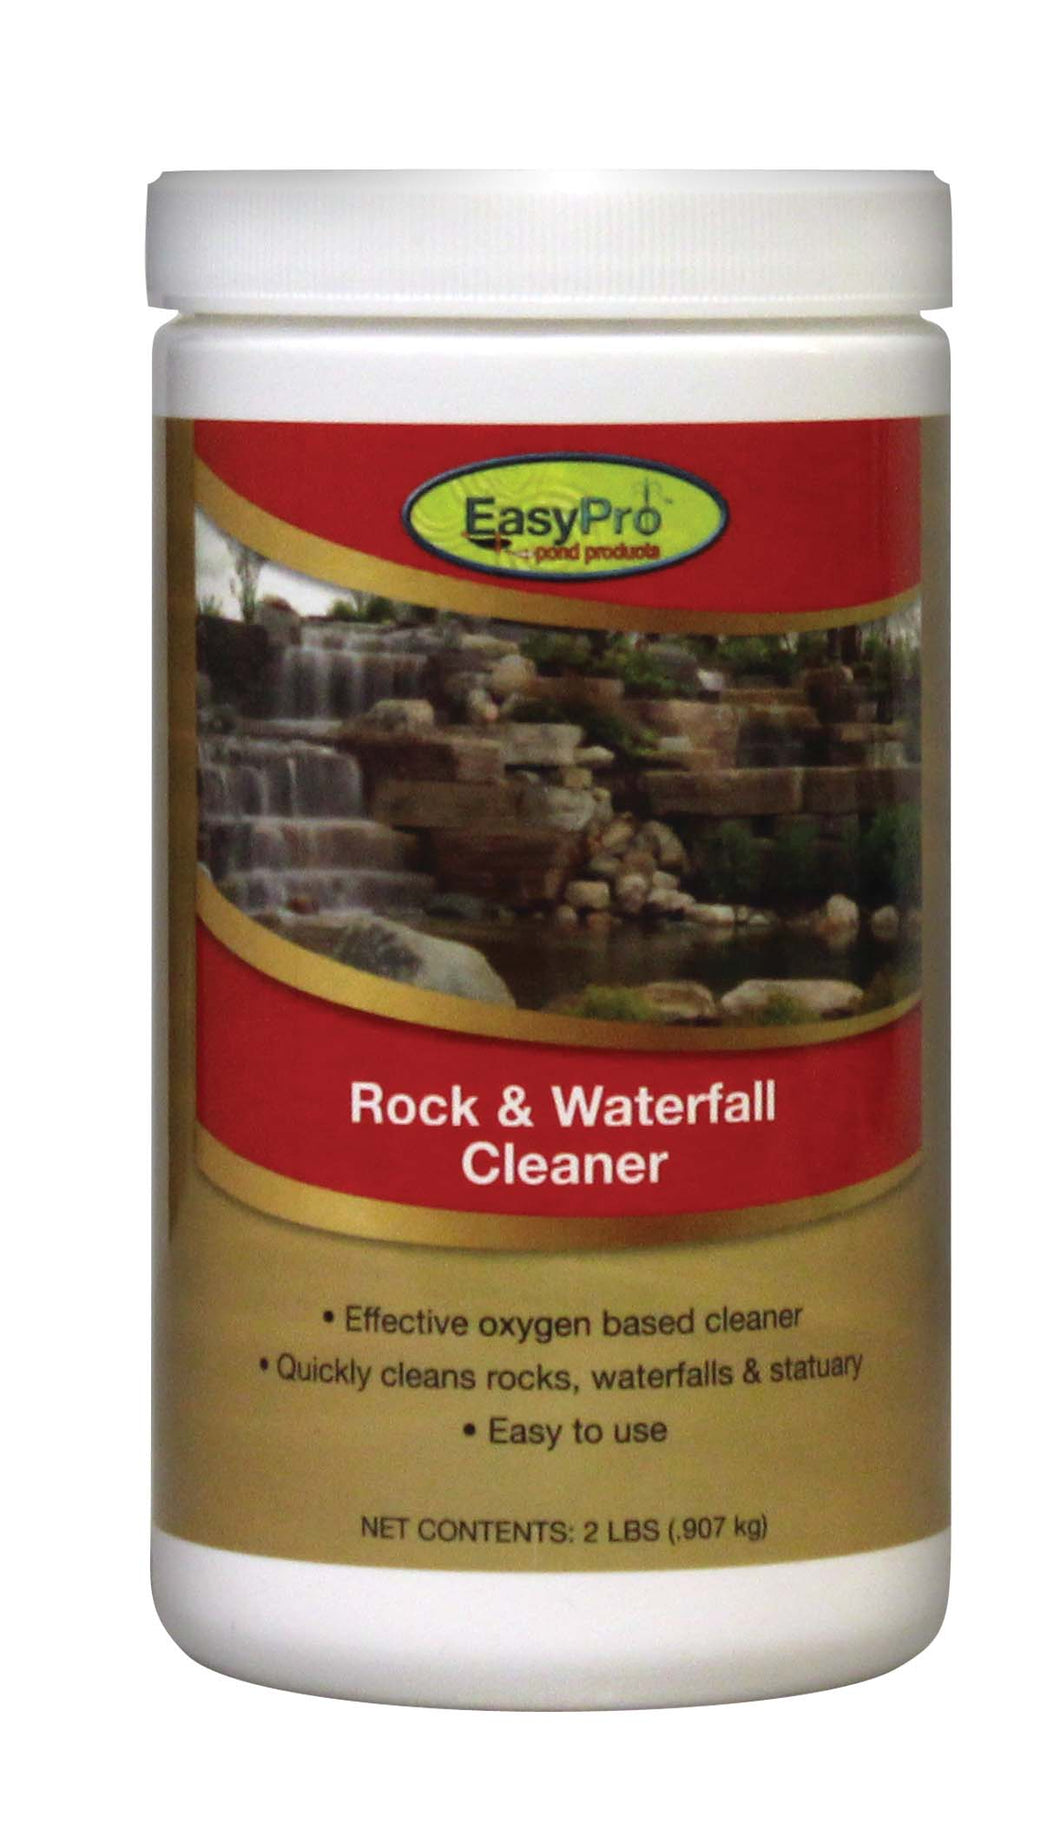 Oxy Rock & Waterfall Cleaner